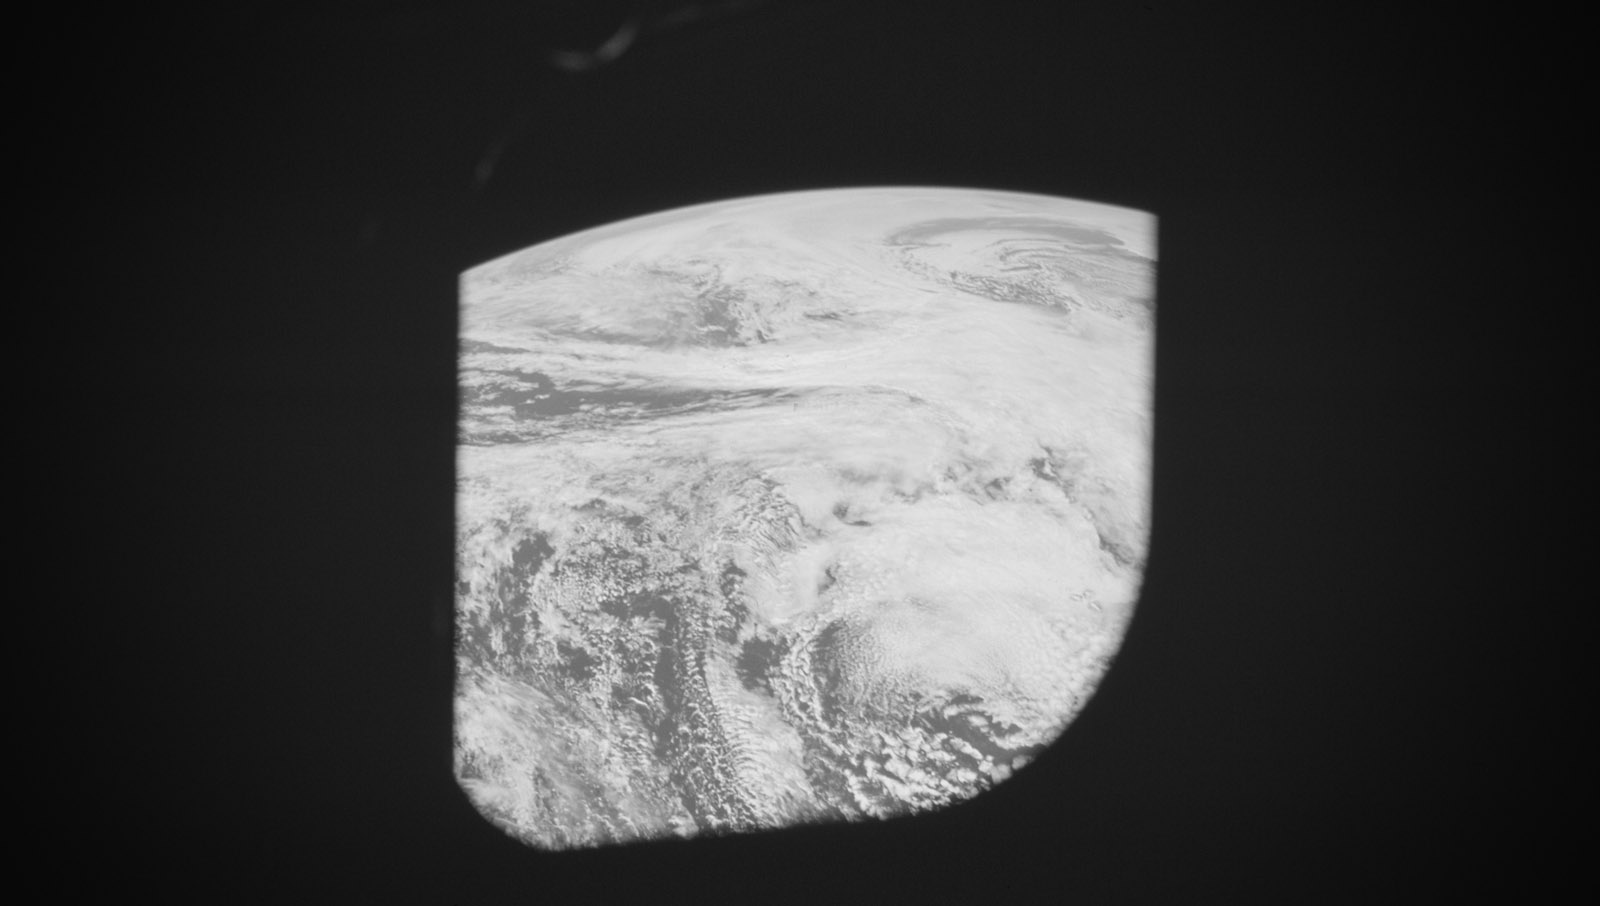 The view of Earth from the Command Module. (image courtesy NASA)